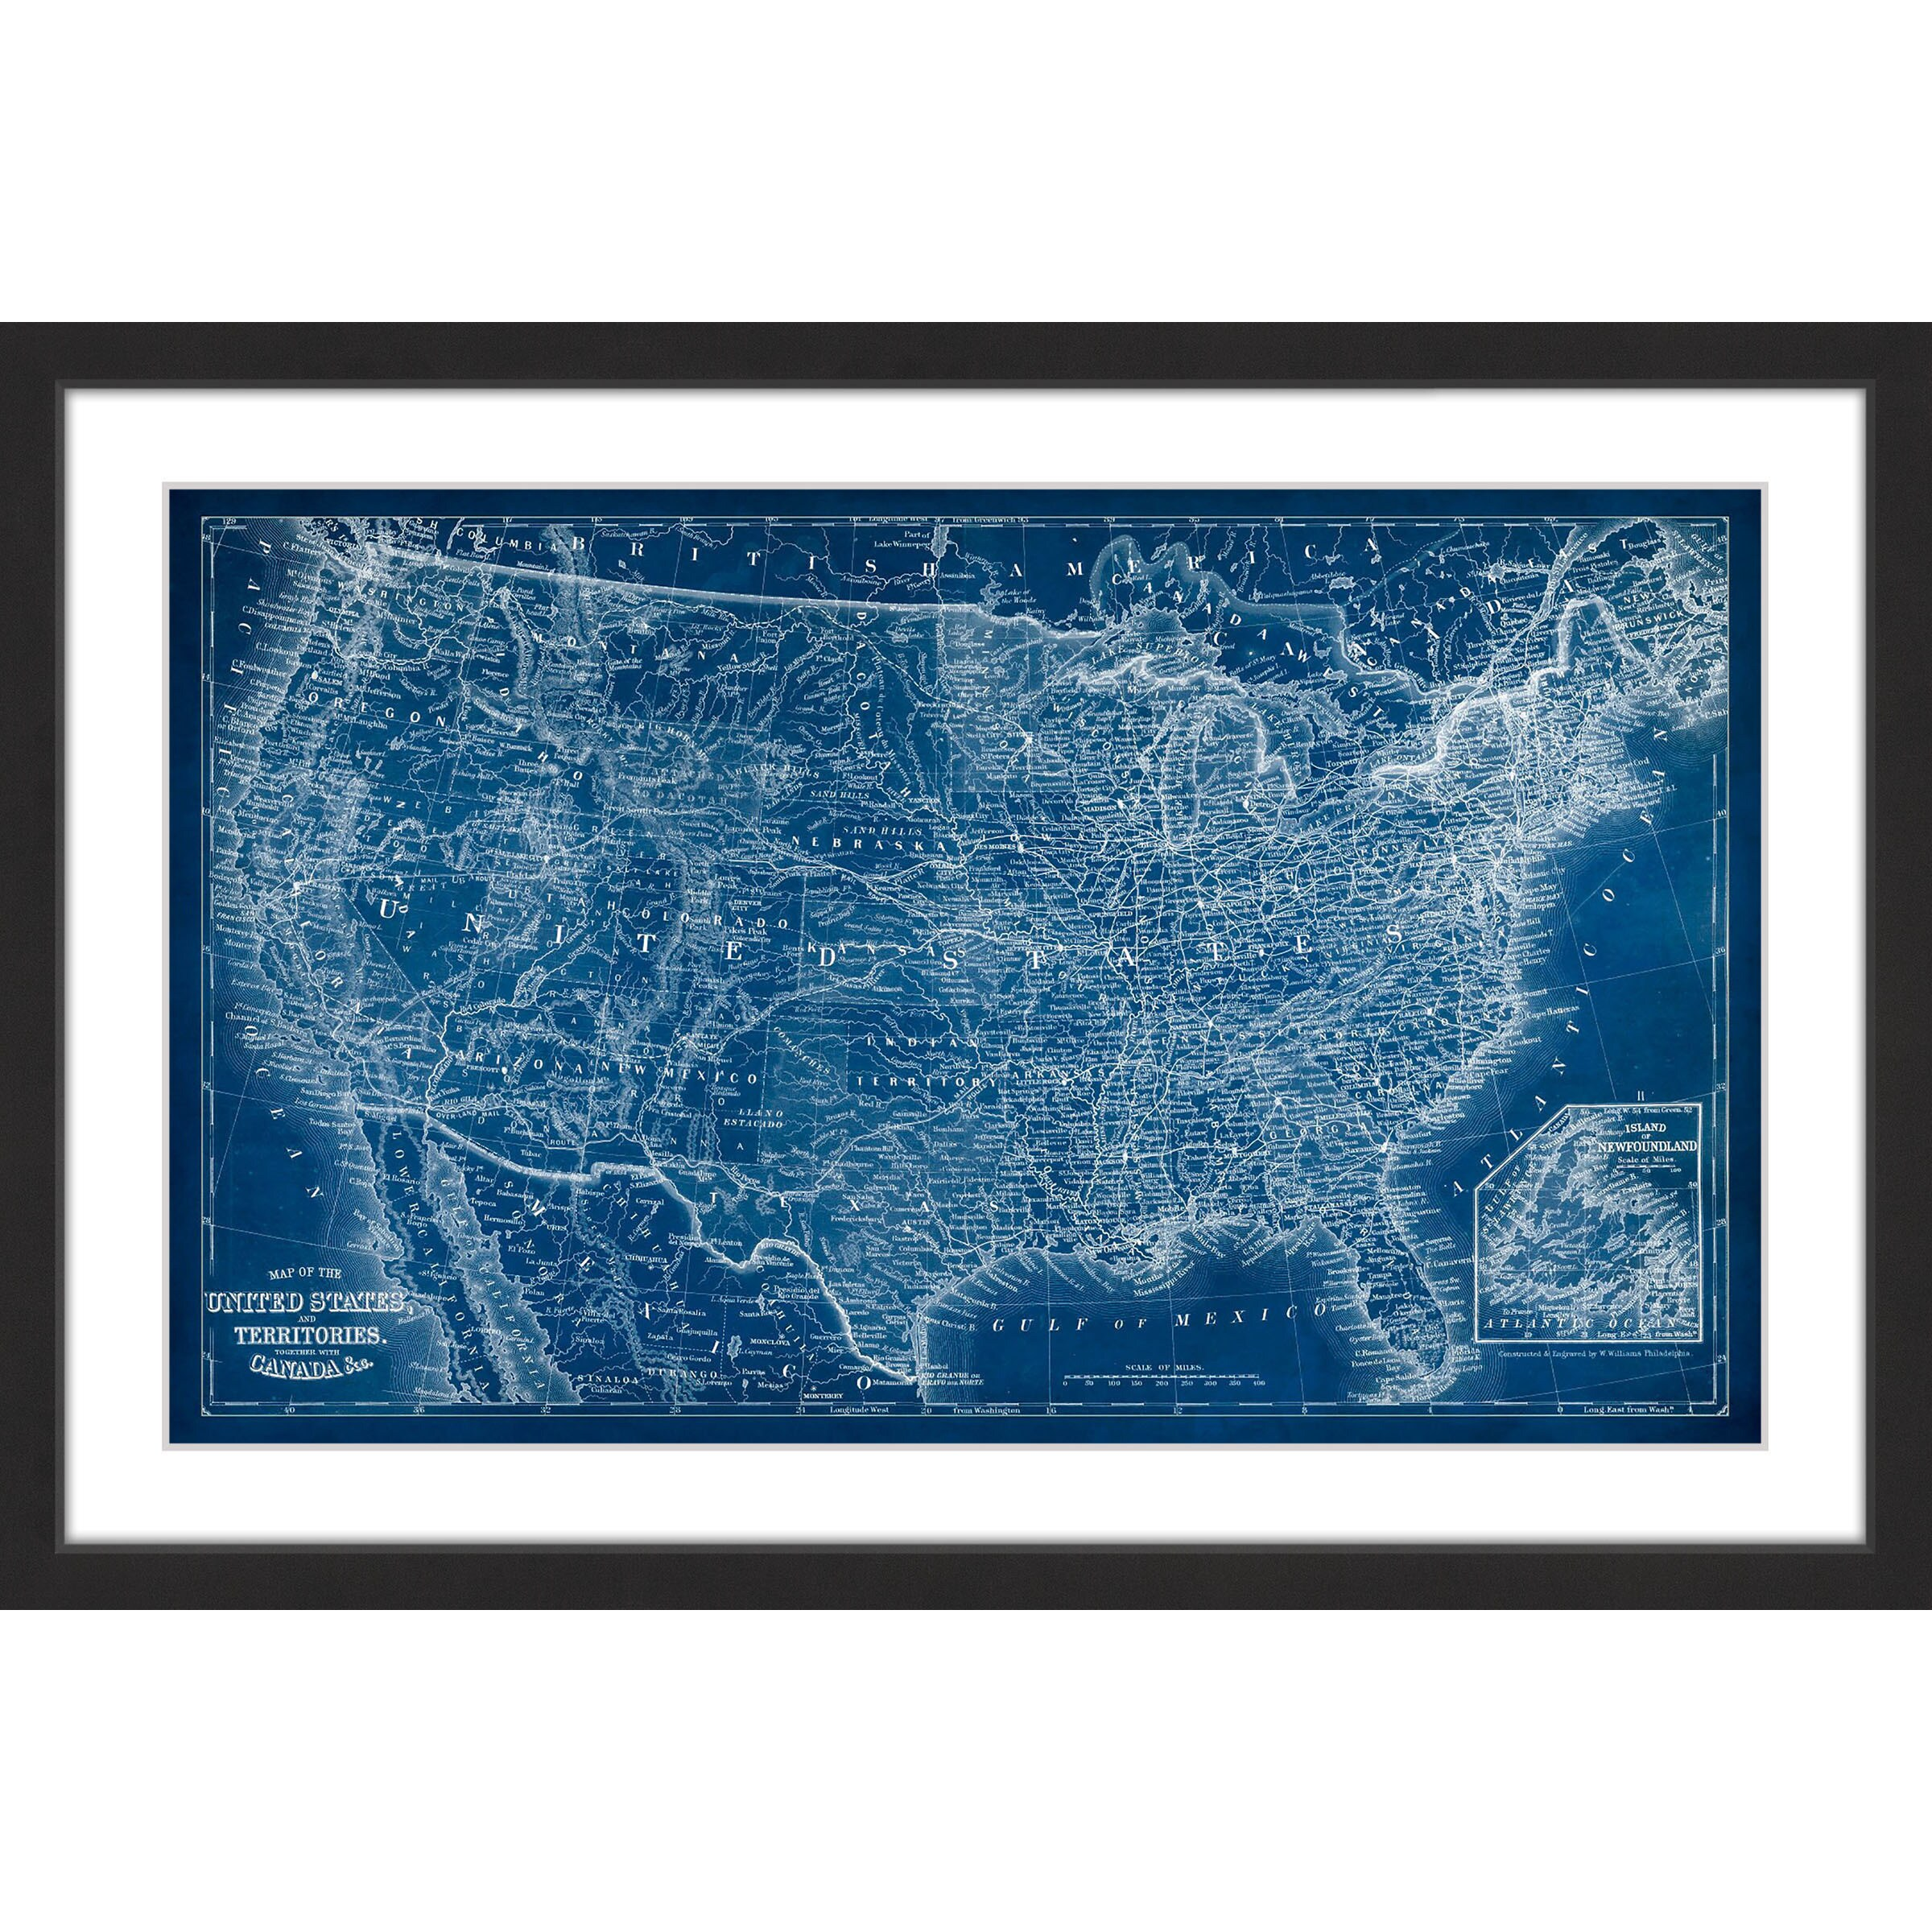 Marmont hill us map blueprint framed painting print free marmont hill us map blueprint framed painting print free shipping today overstock 19729511 malvernweather Image collections